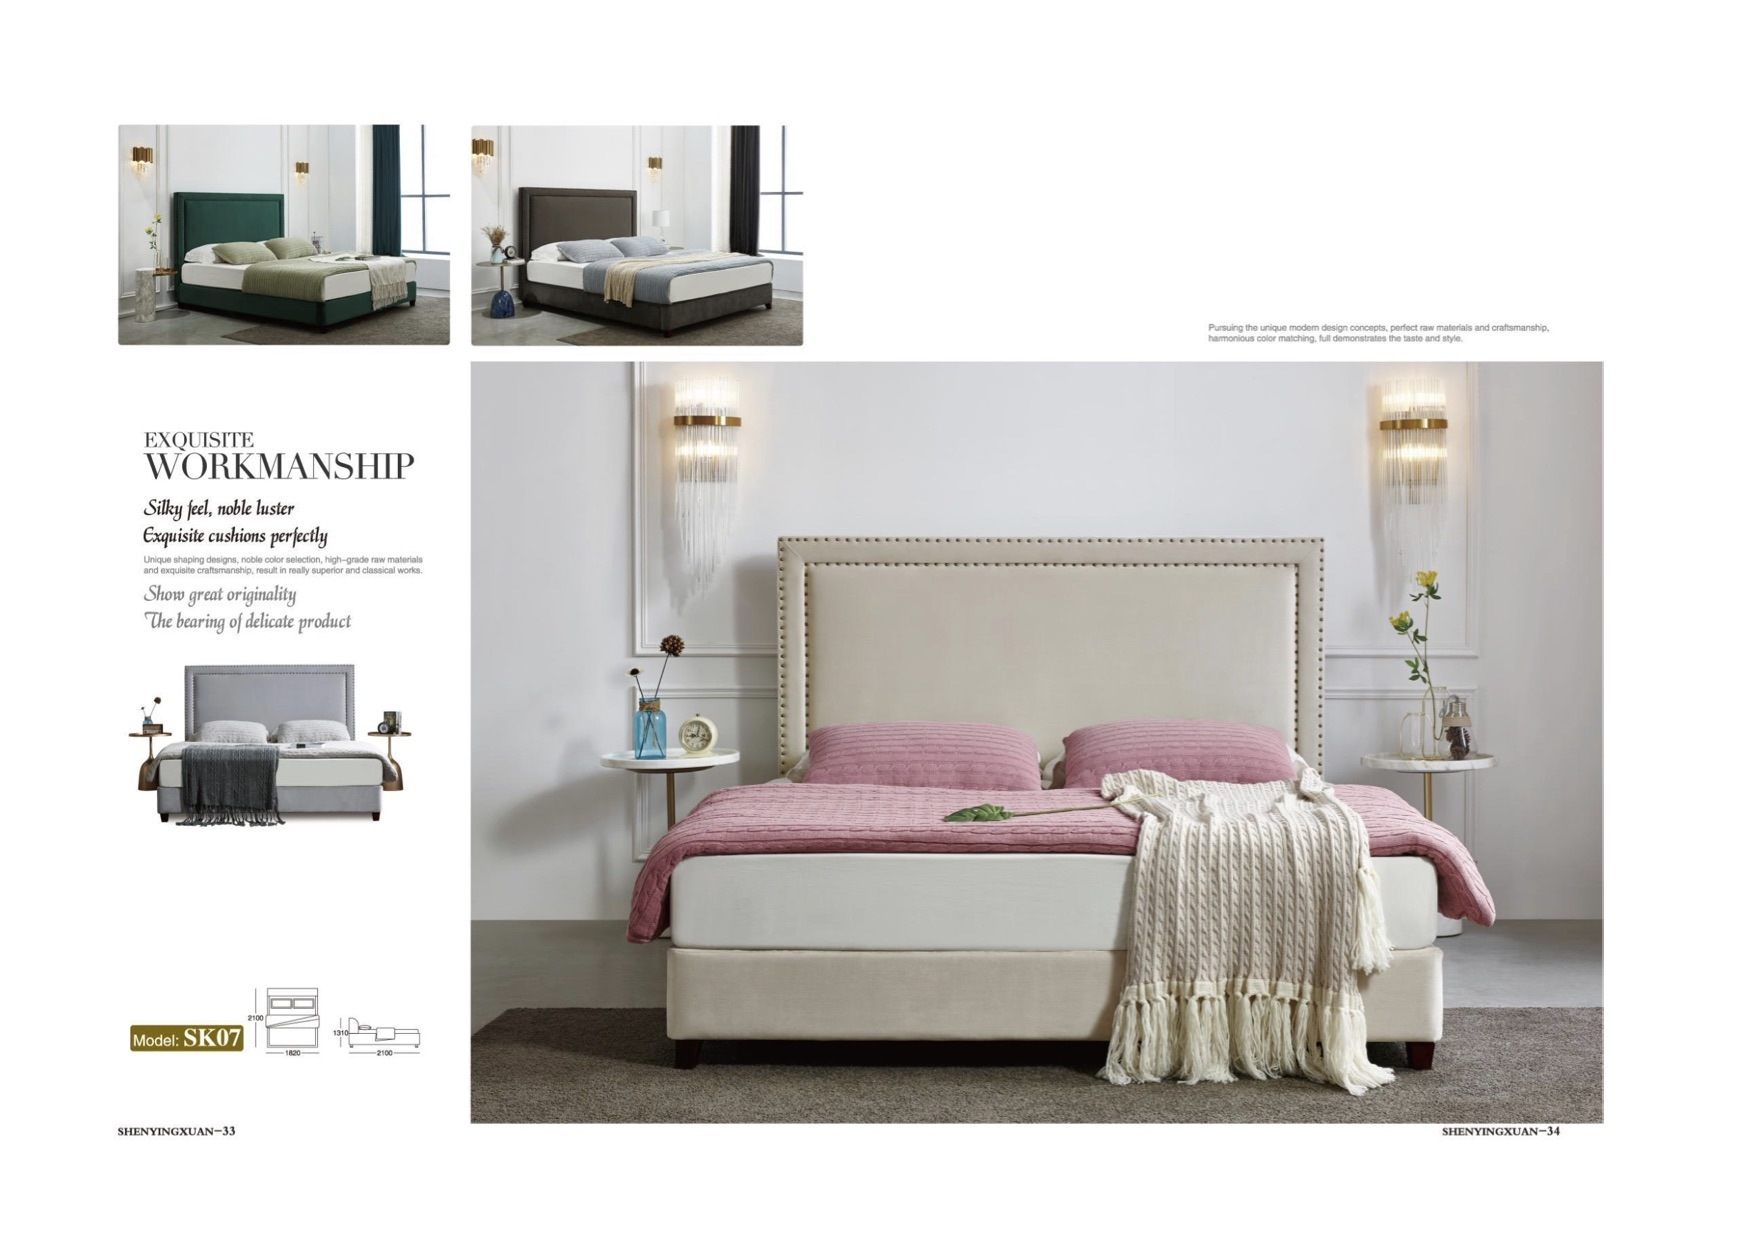 Hot Selling Simple Fashion Fabric Or Pu Leather Bedroom Set And Headboard For Furniture Mattress China Bedroom Hotel Furniture Made In China Com